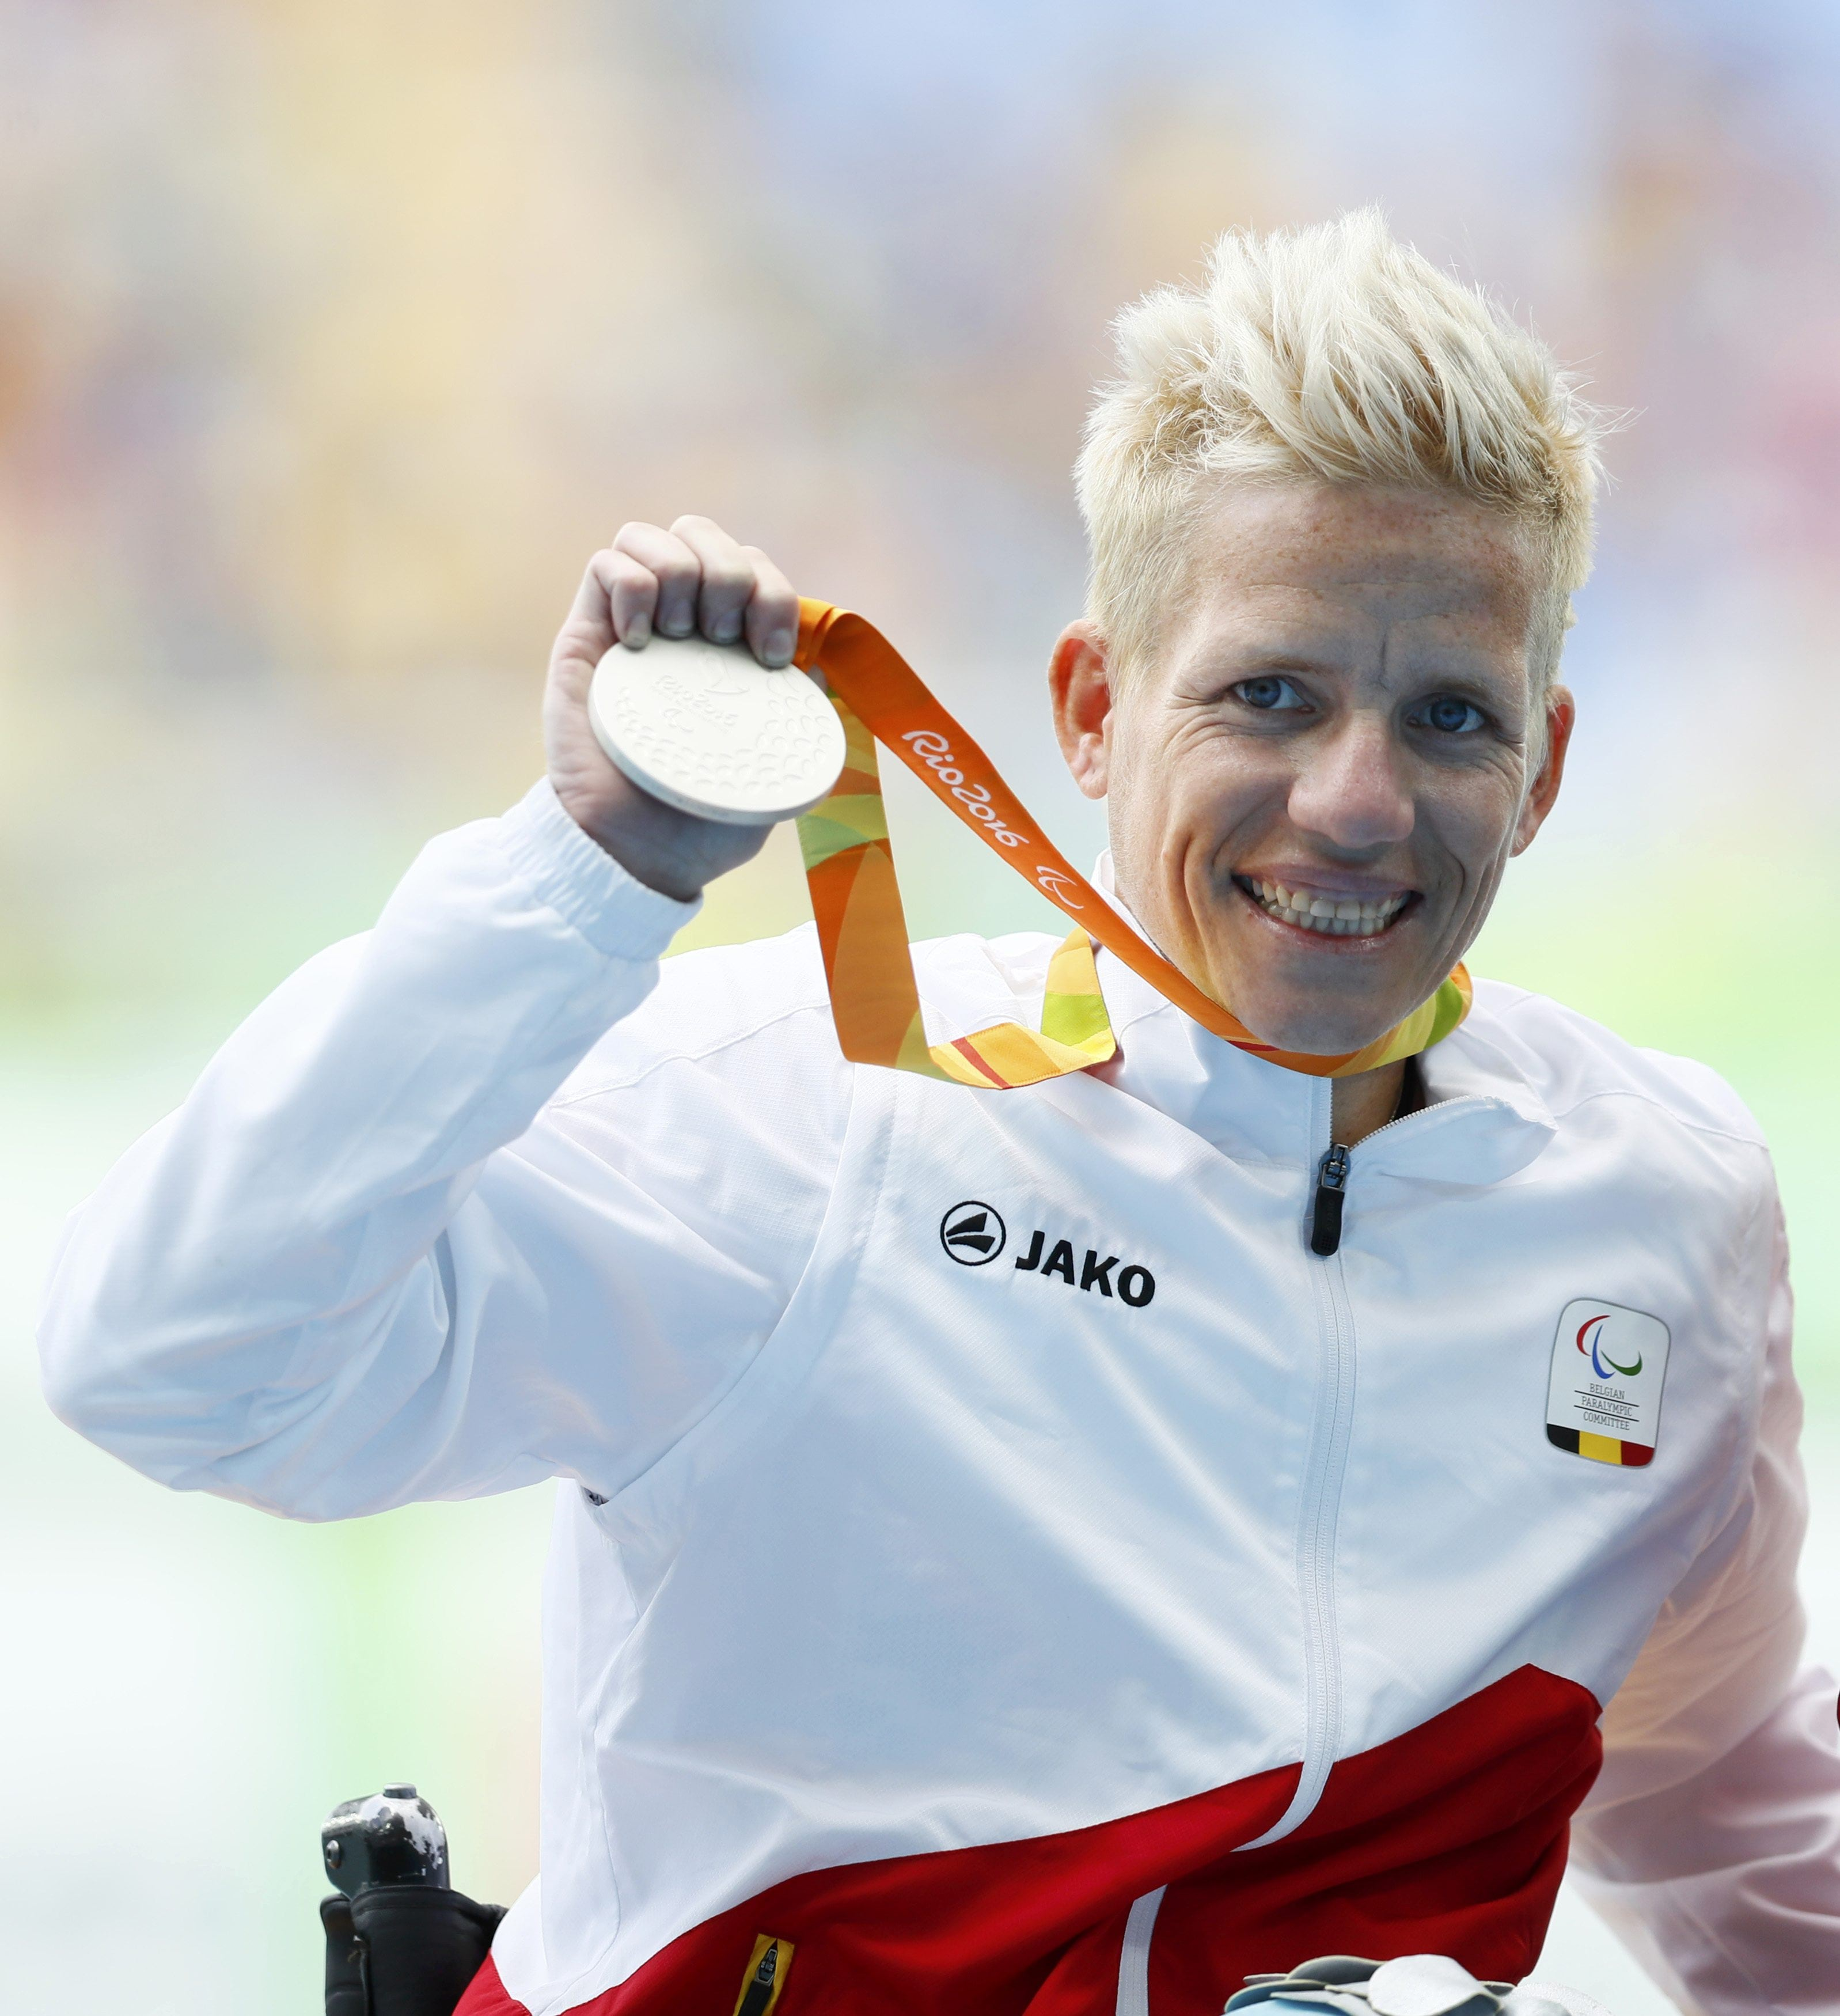 2016 Rio Paralympics - Women's 400m - T52 Final - Olympic Stadium - Rio de Janeiro, Brazil - 10/09/2016. Marieke Vervoort of Belgium celebrates with her silver medal during the presentation ceremony. REUTERS/Jason Cairnduff FOR EDITORIAL USE ONLY. NOT FOR SALE FOR MARKETING OR ADVERTISING CAMPAIGNS.